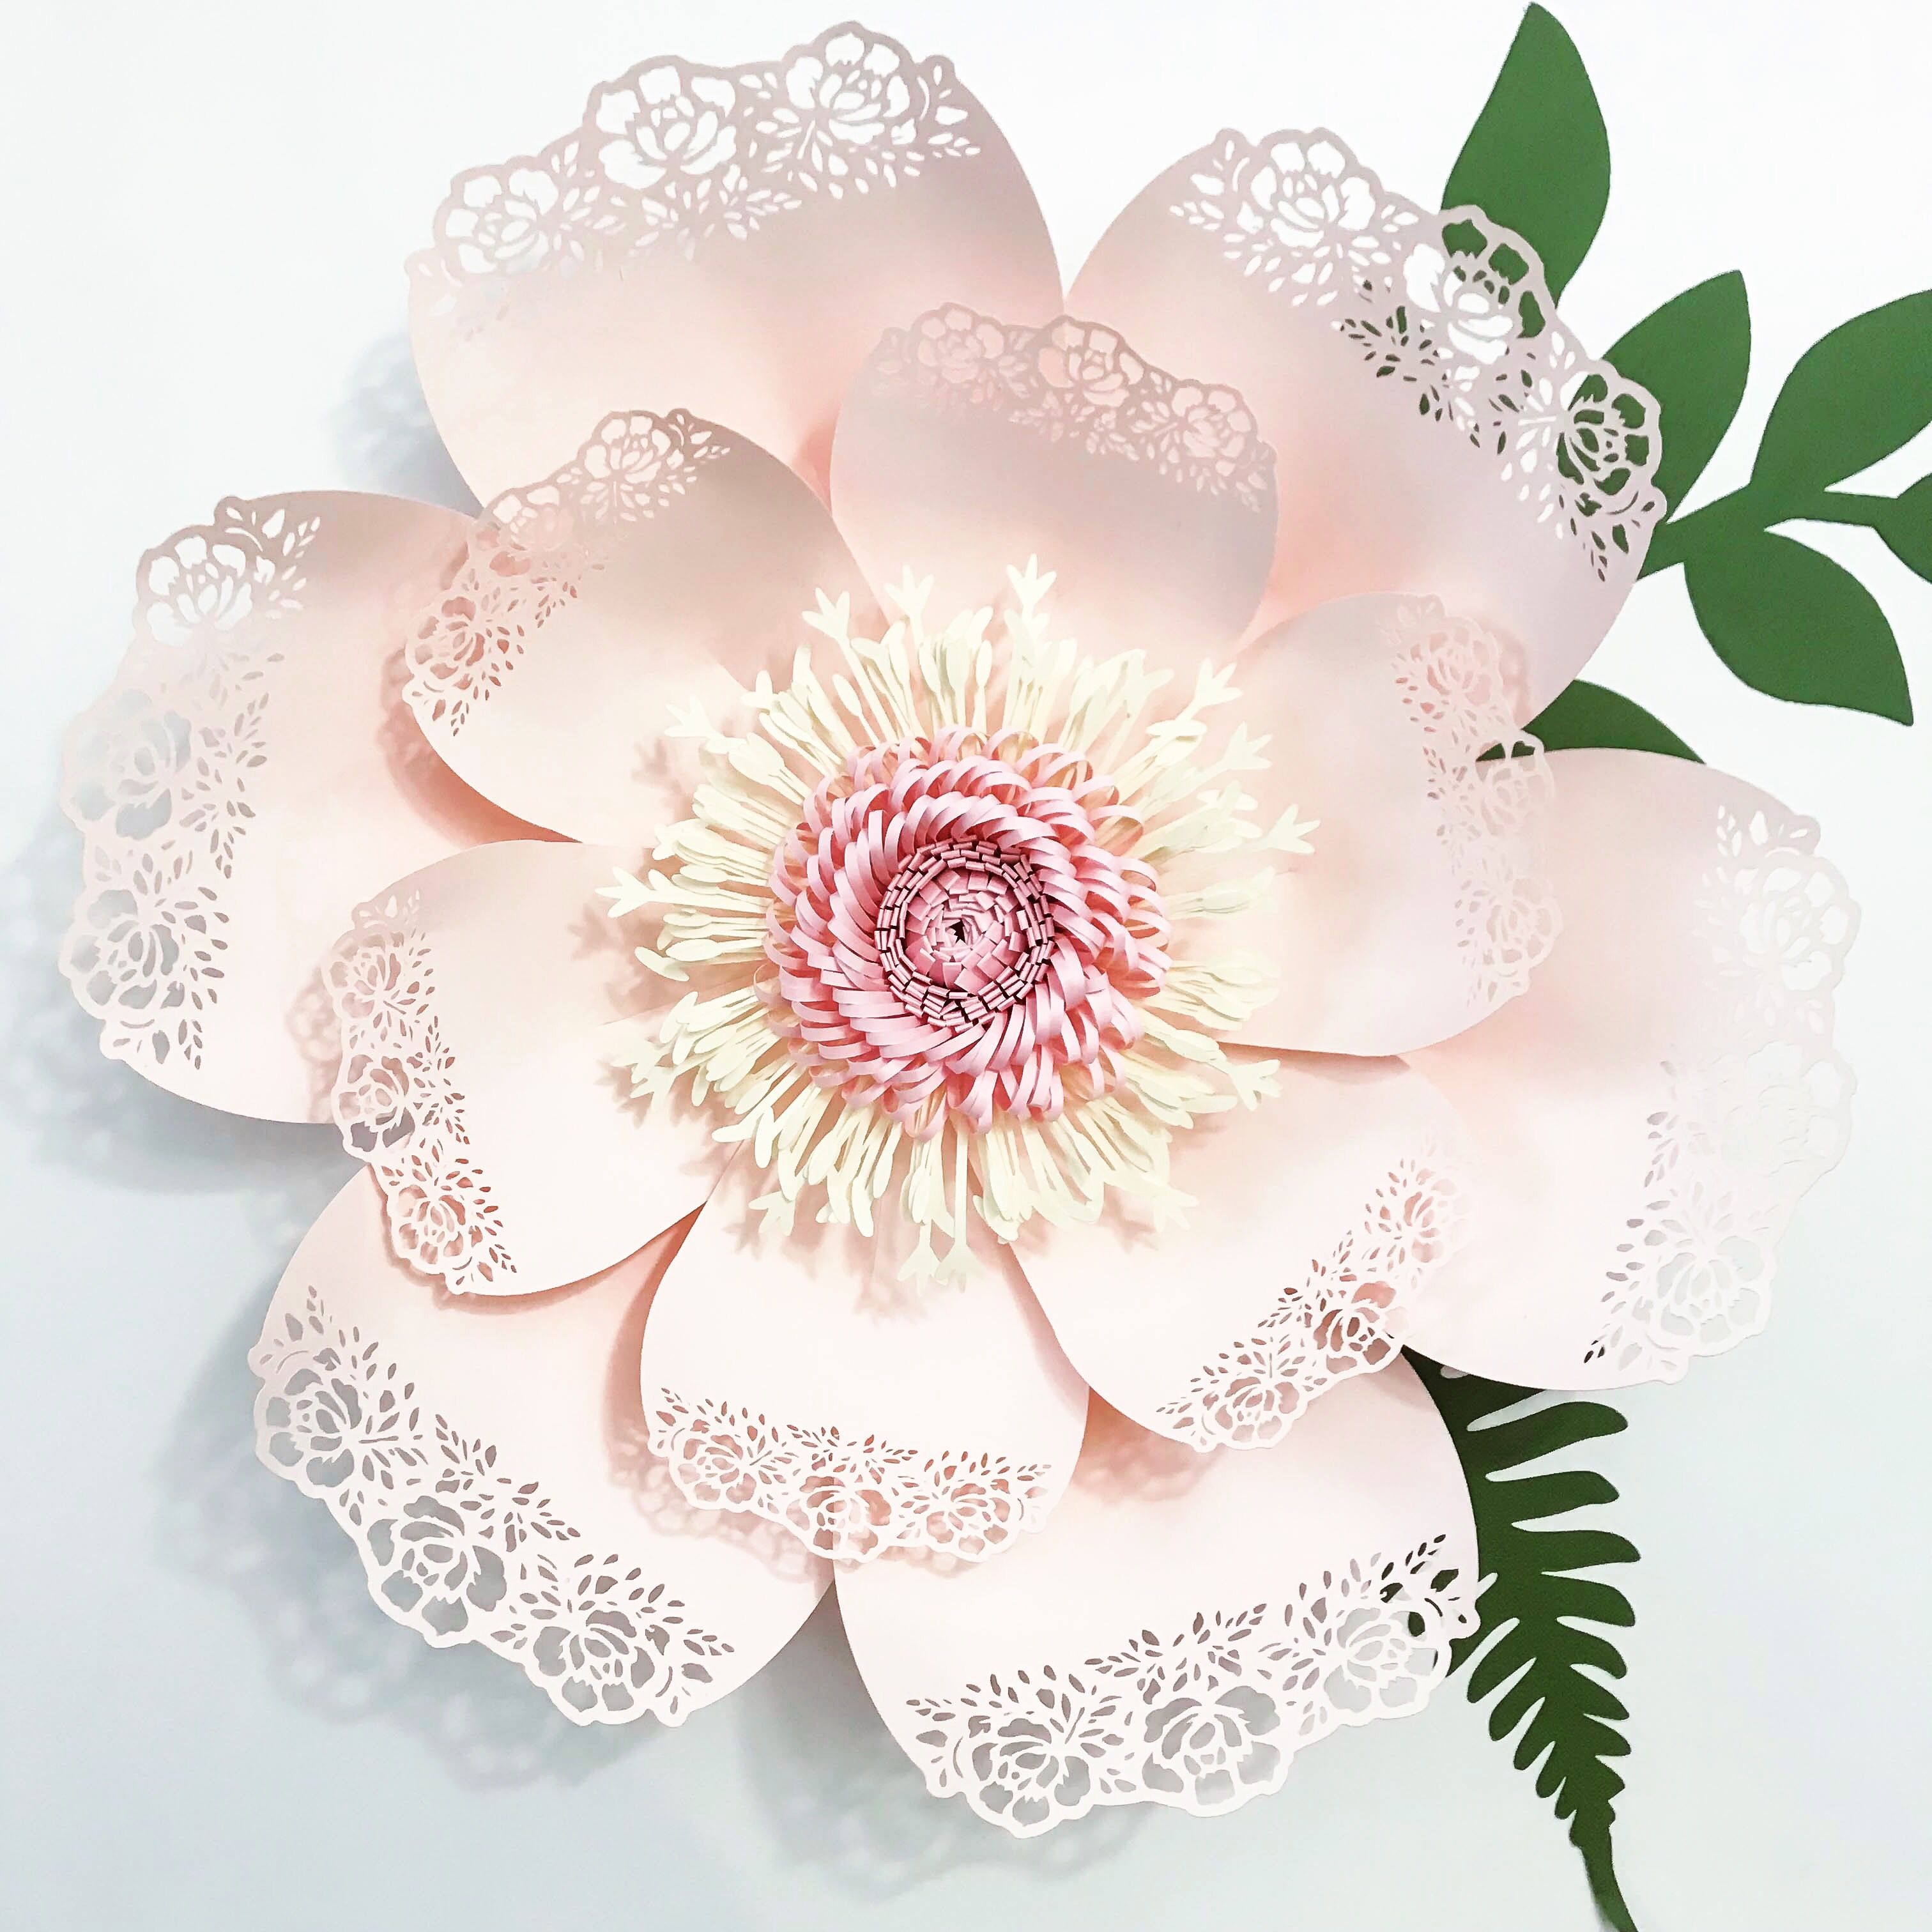 Lace paper flower template 5 learn the art of paper flower lace paper flower template 5 learn the art of paper flower artistry paper flower templates from the crafty sagittarius it comes in svg video tutorial mightylinksfo